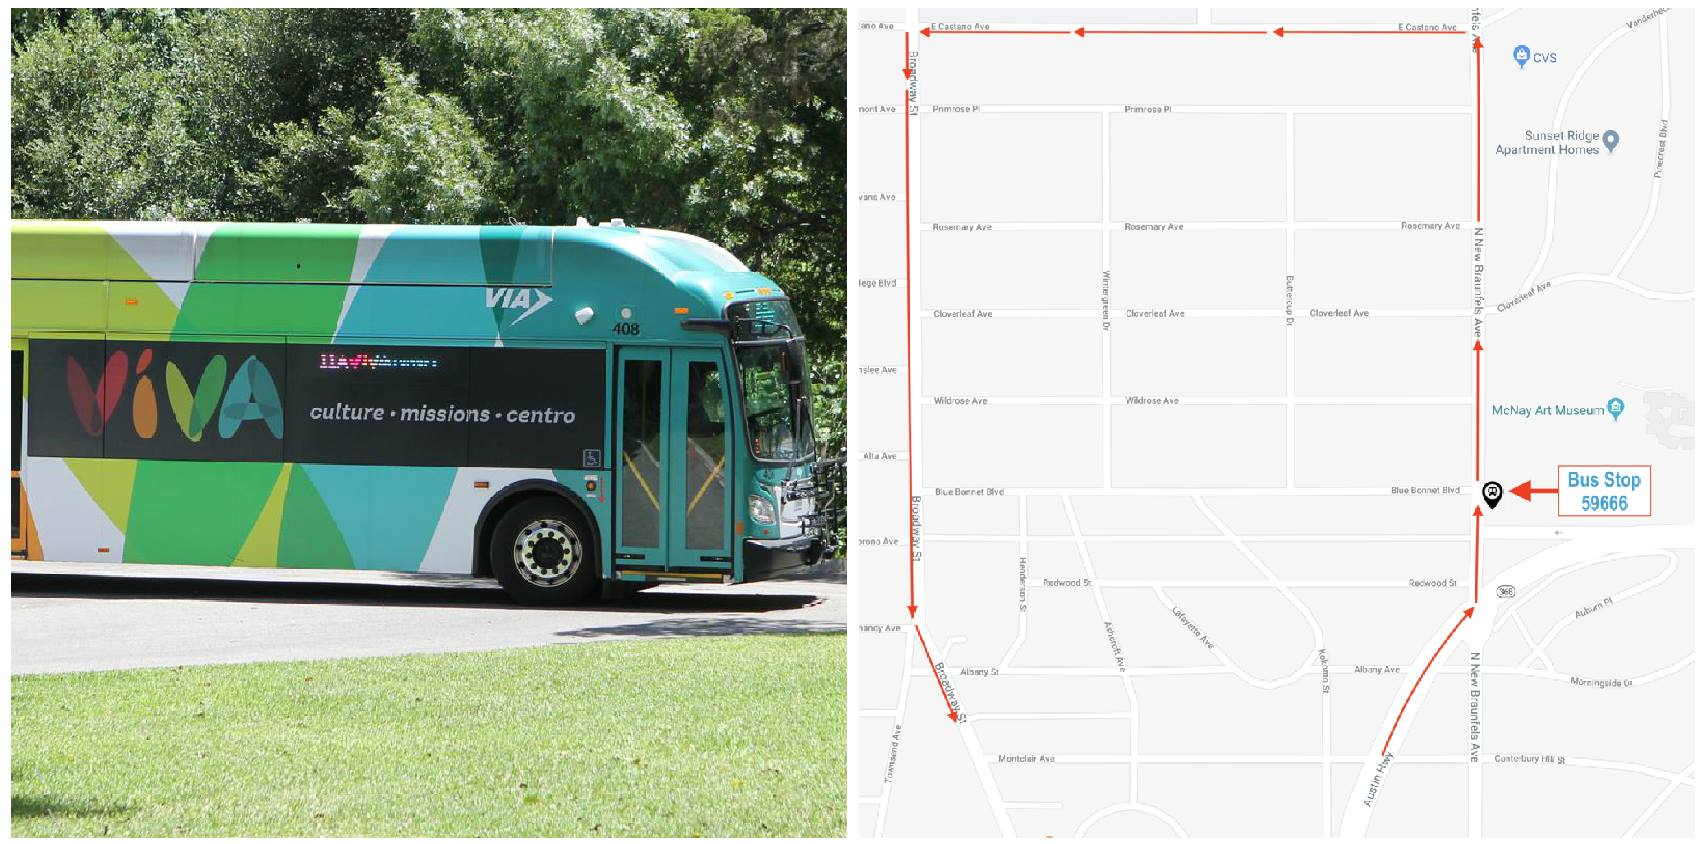 new via viva culture bus stop at mcnay | mcnay art museum